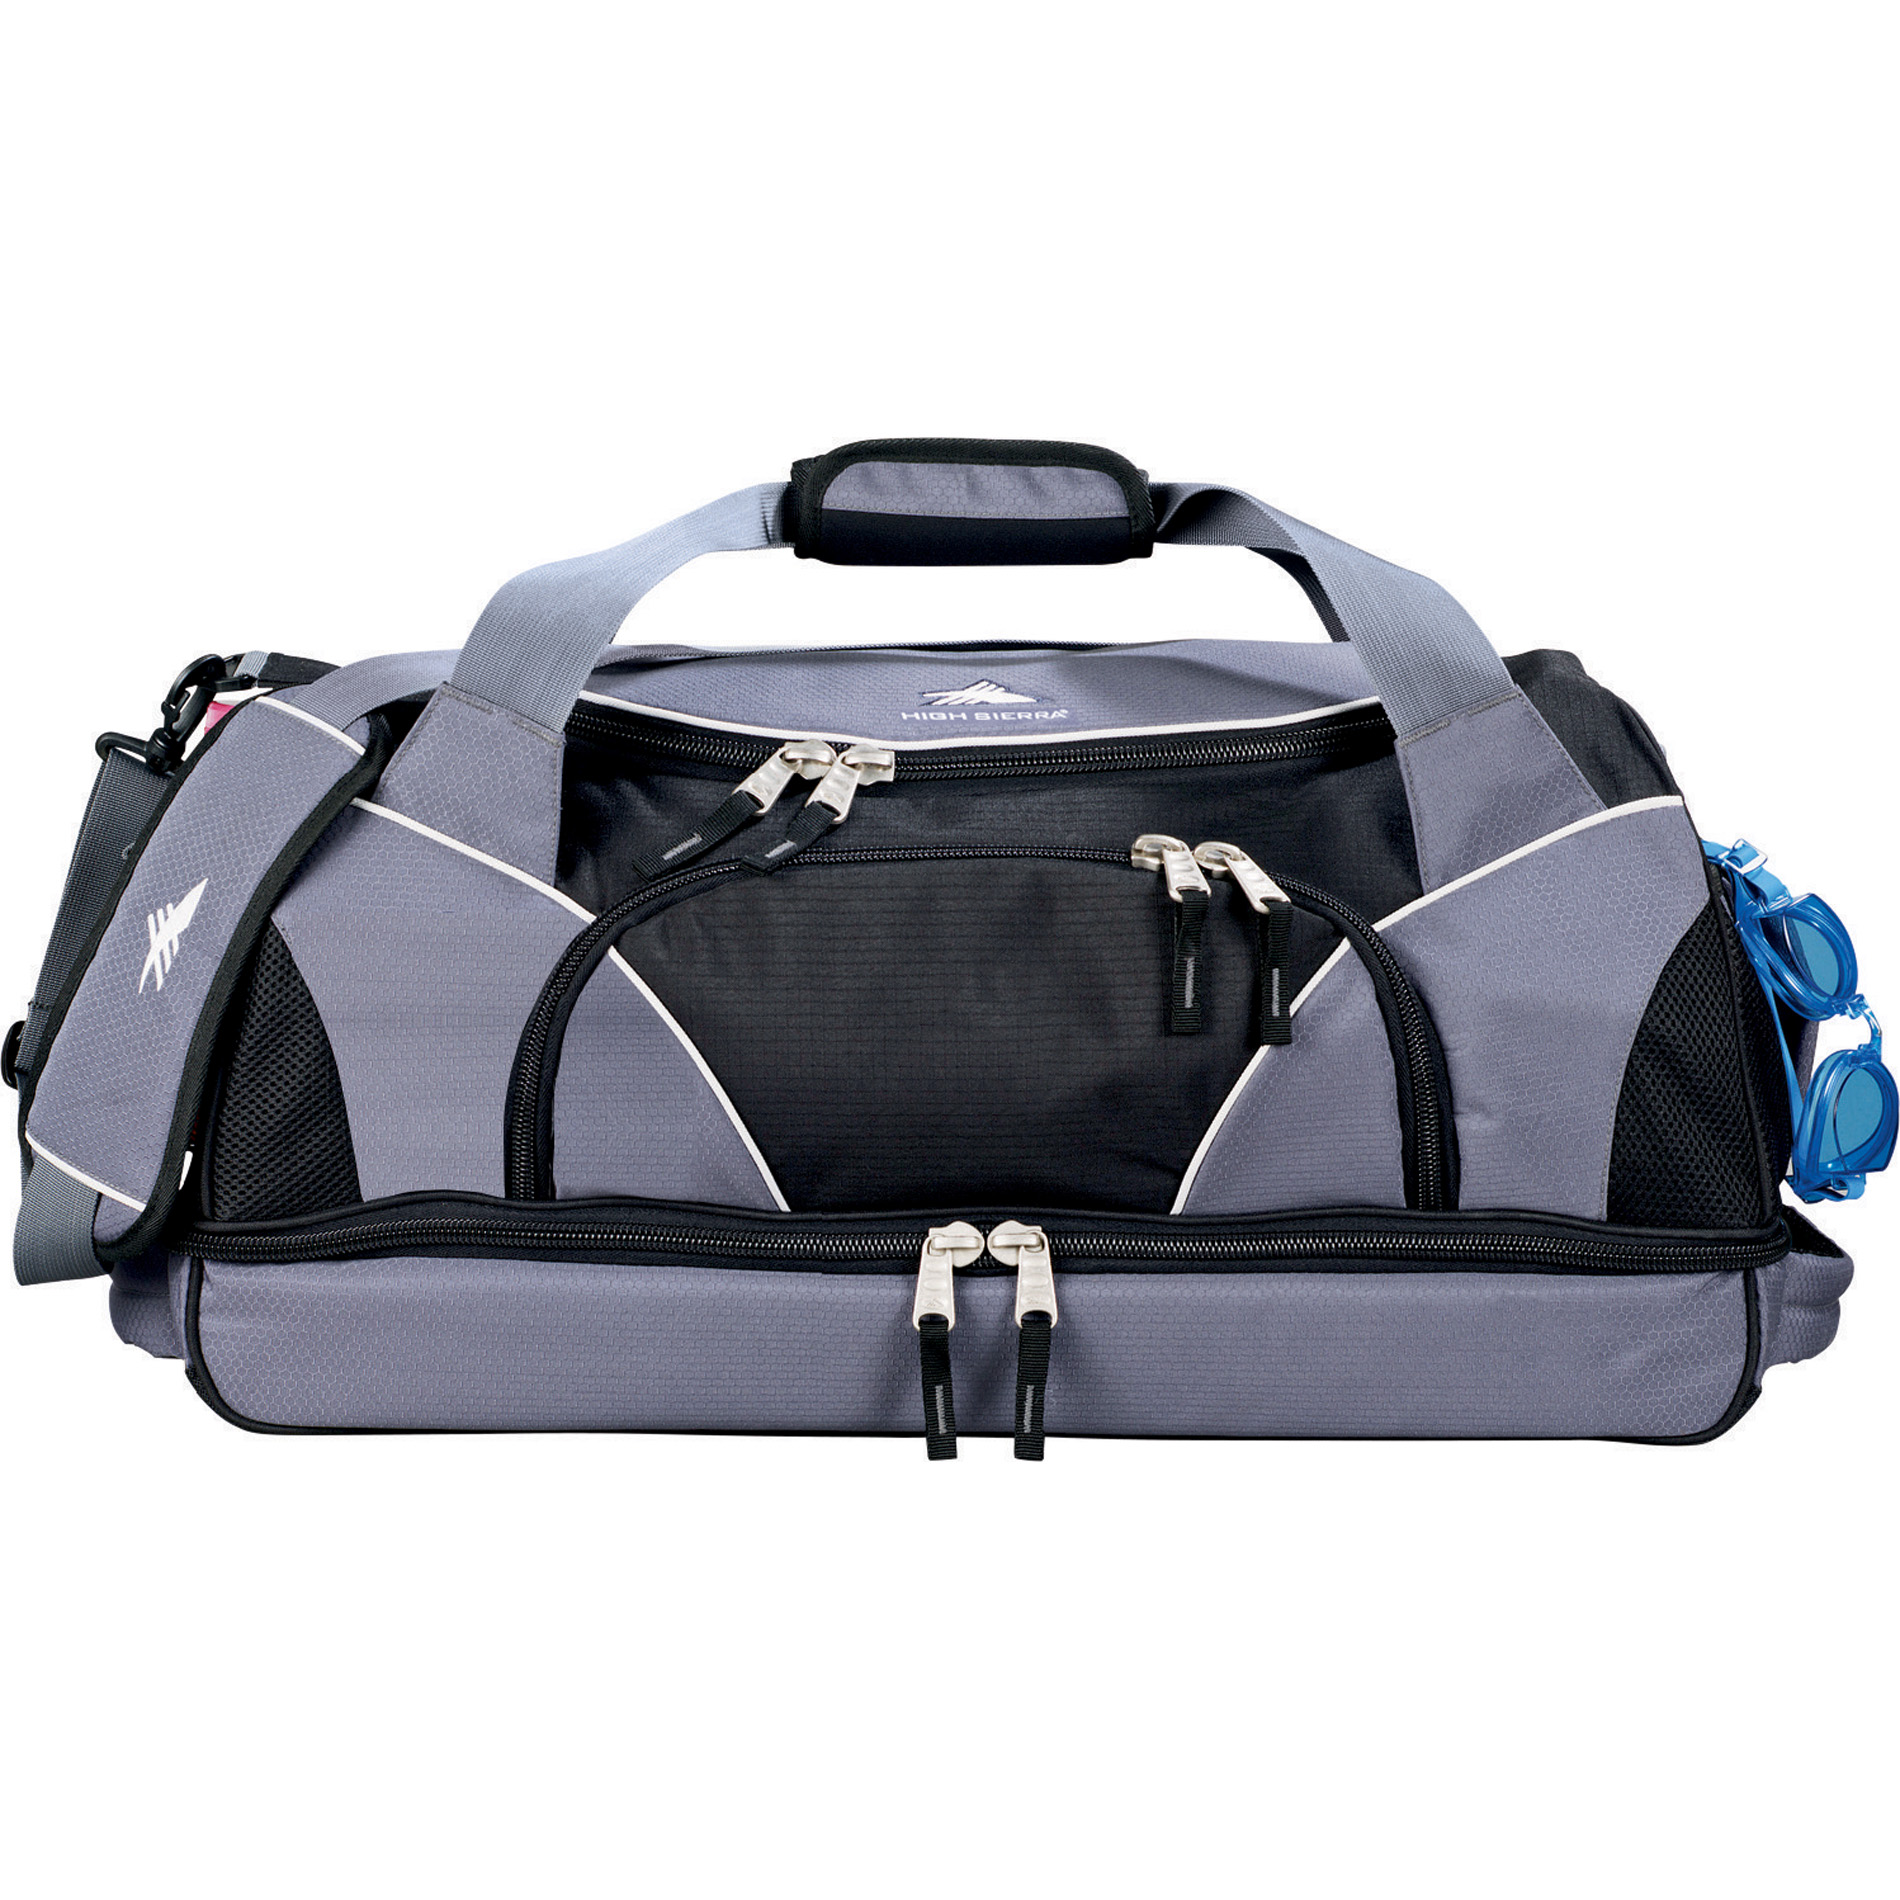 "High Sierra 8050-18 - 24"" Crunk Cross Sport Duffel Bag"